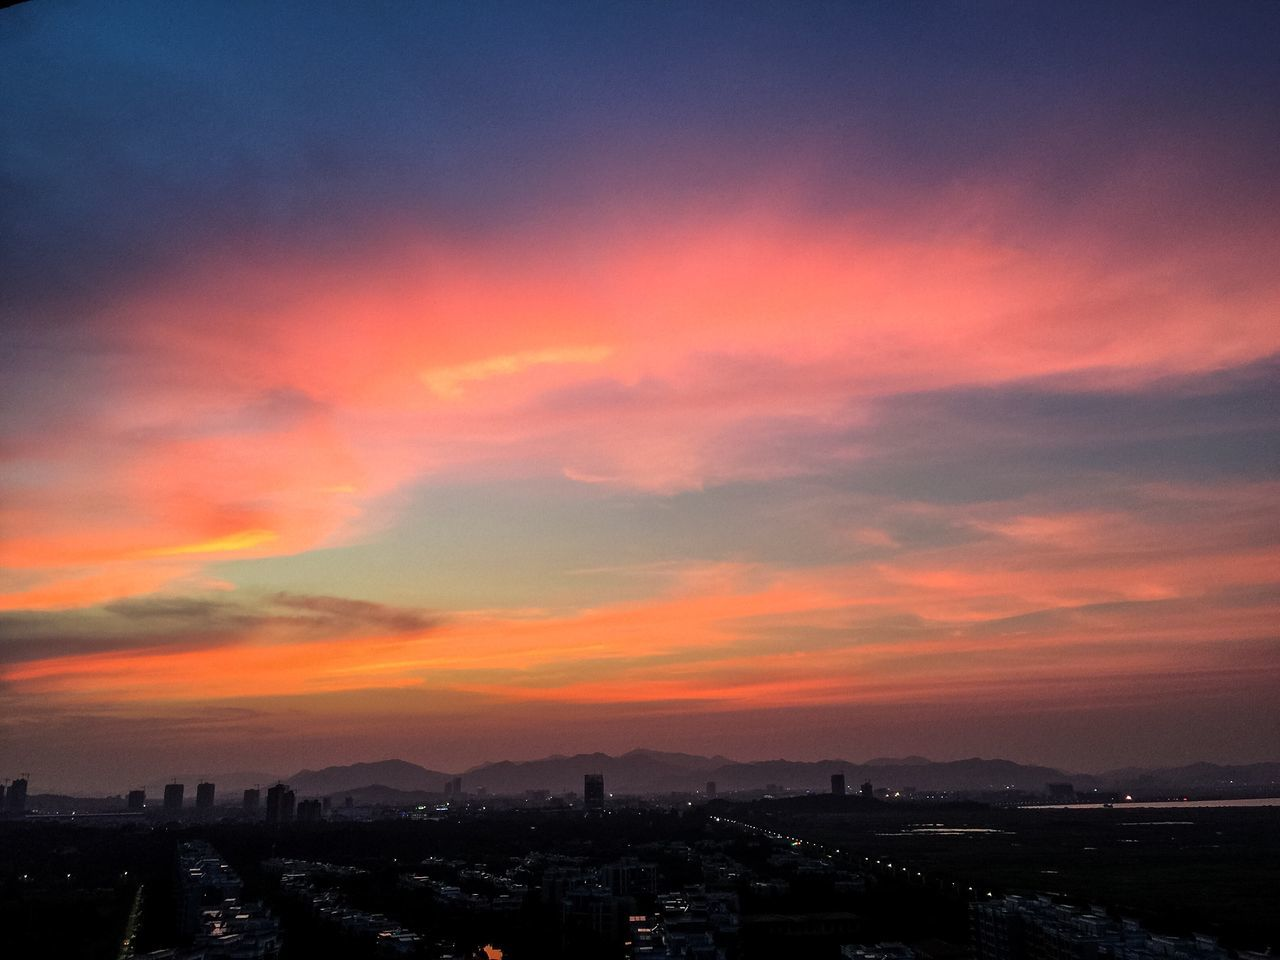 Cityscape City Architecture Sunset Built Structure Building Exterior Residential District Orange Color Residential Building Residential Structure Crowded High Angle View Sky Mountain Cloud - Sky City Life Cloud Development Romantic Sky Dramatic Sky Zhuhai China